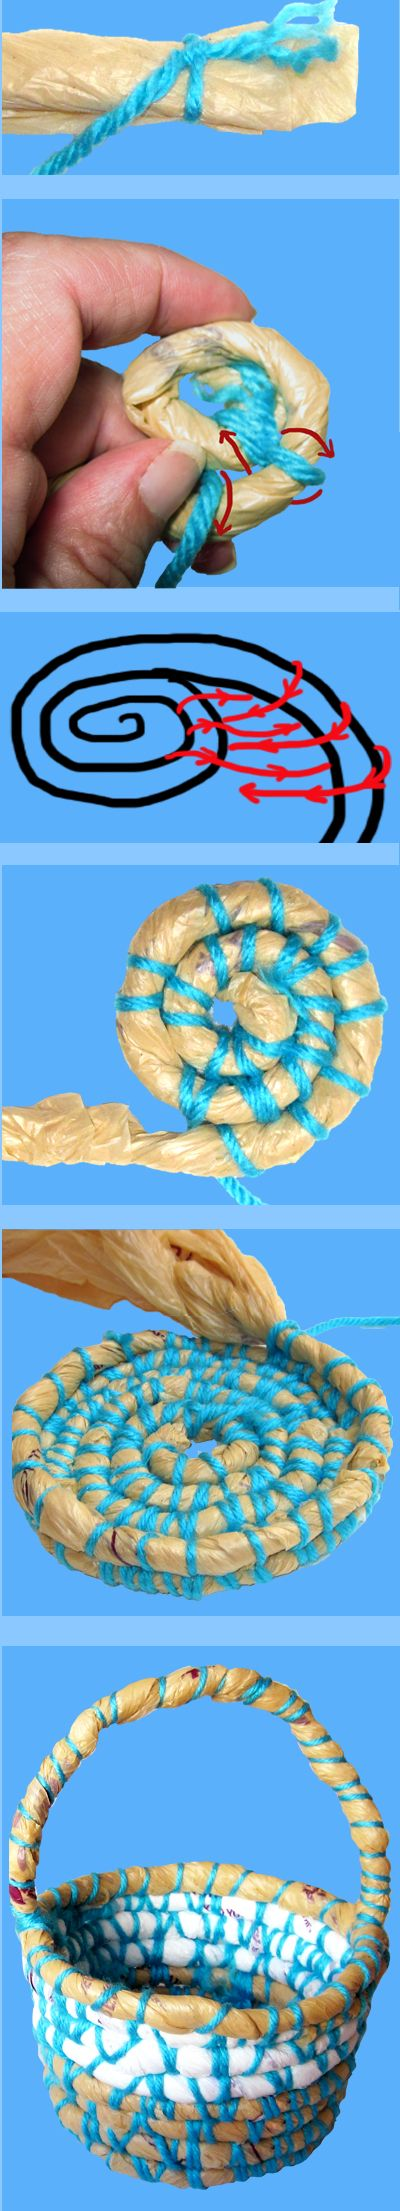 how to make a diaper out of a plastic bag